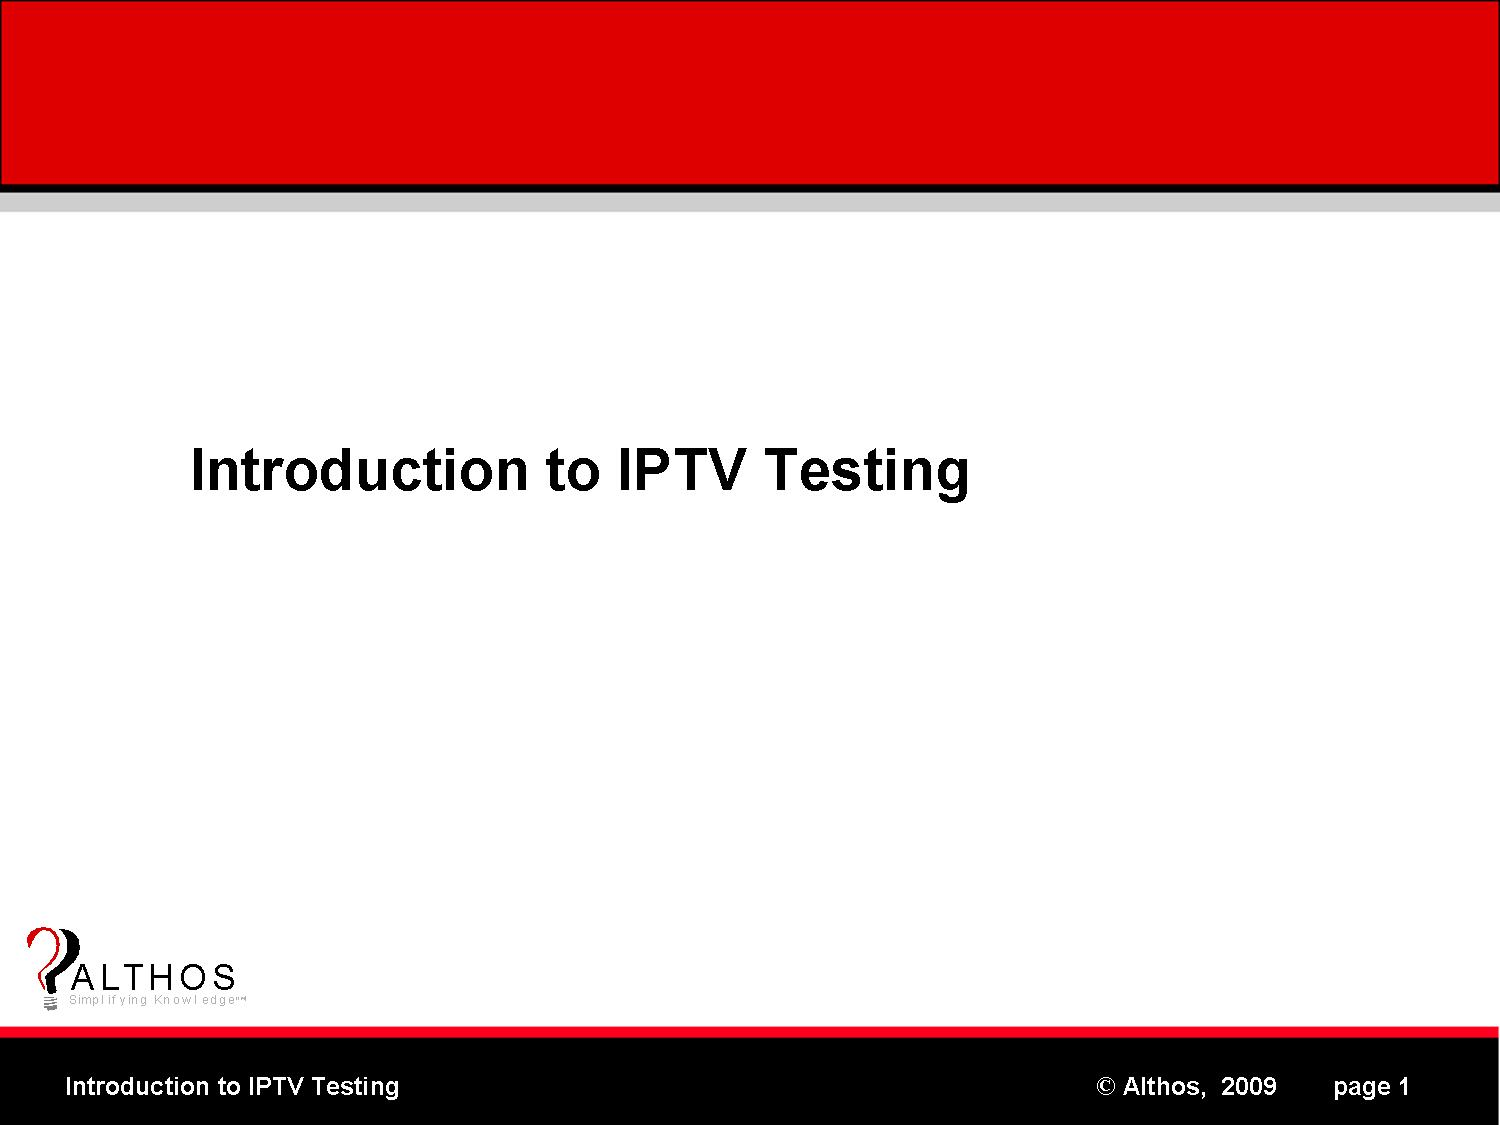 Introduction to IPTV Testing